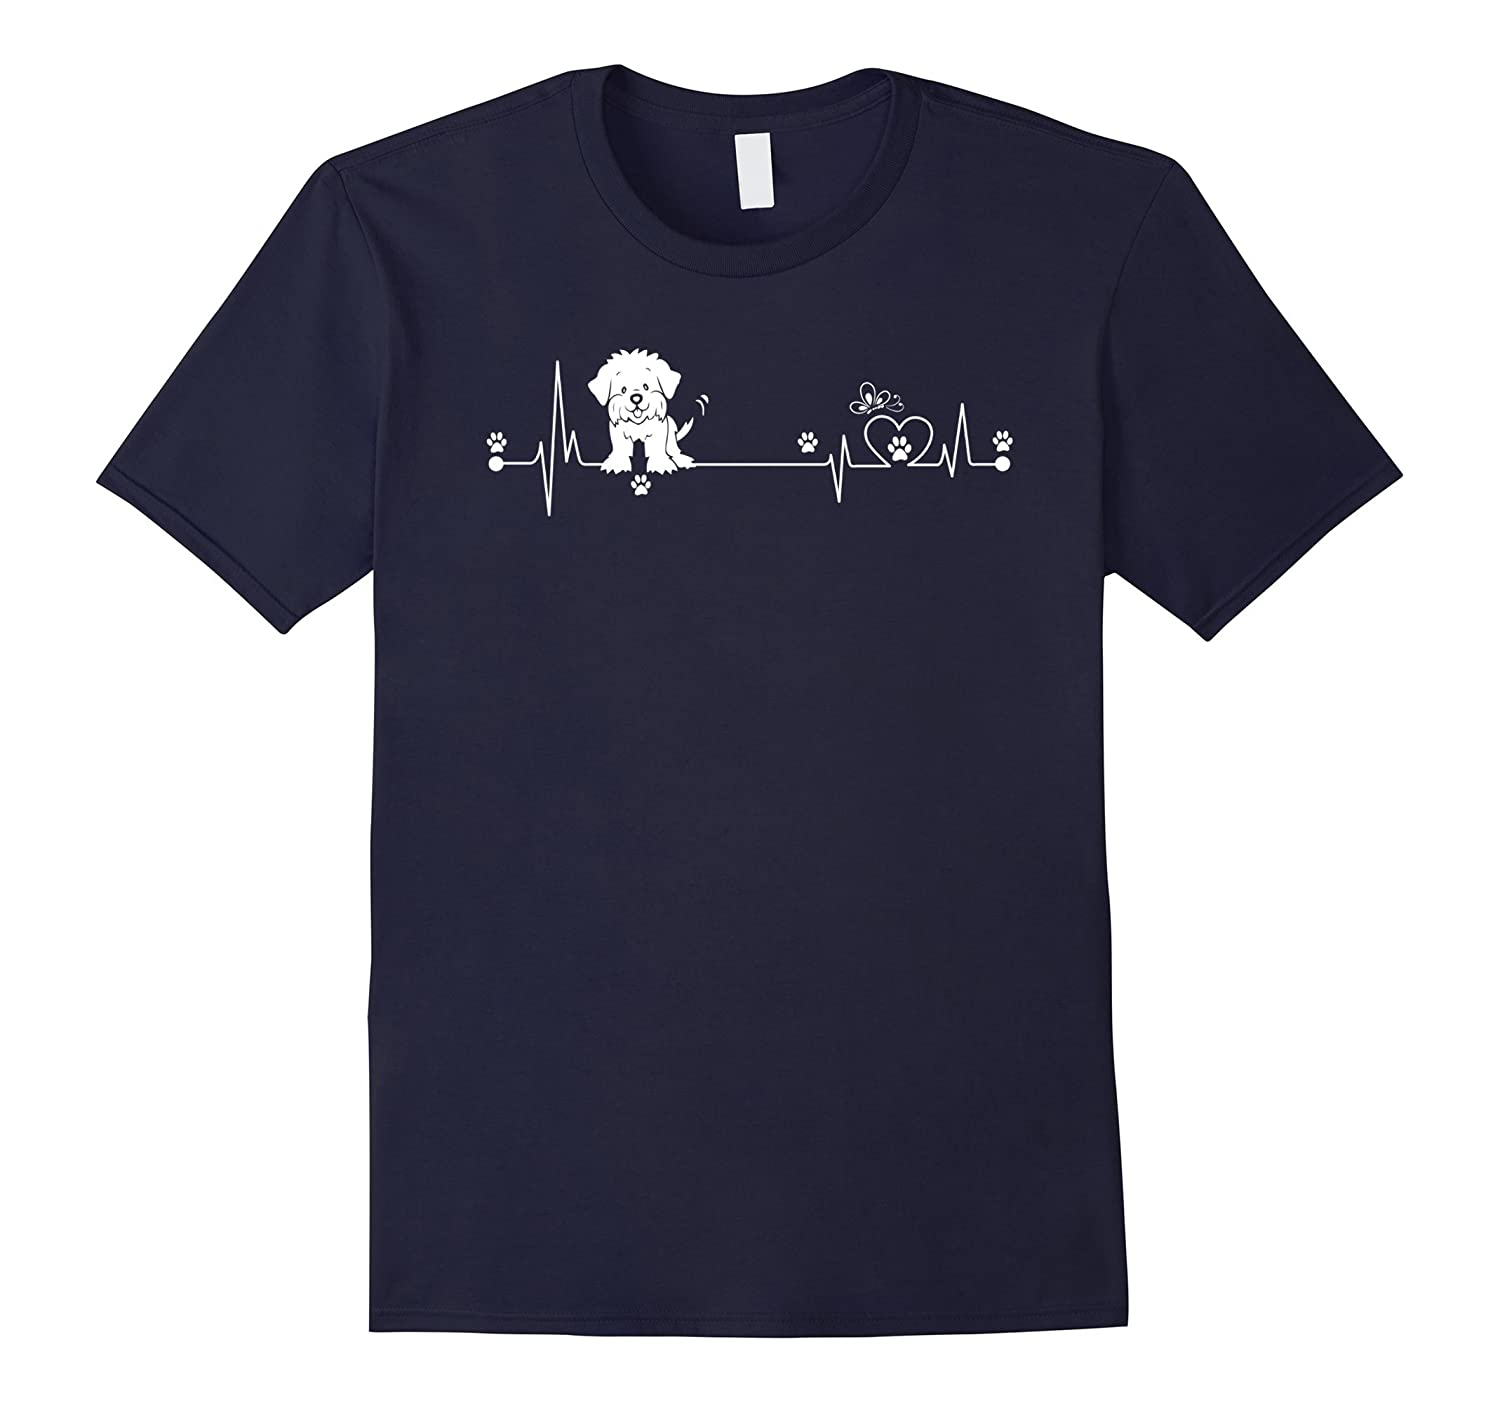 Lhasa Apso T-Shirt, i love Lhasa Apso heart beat-CL